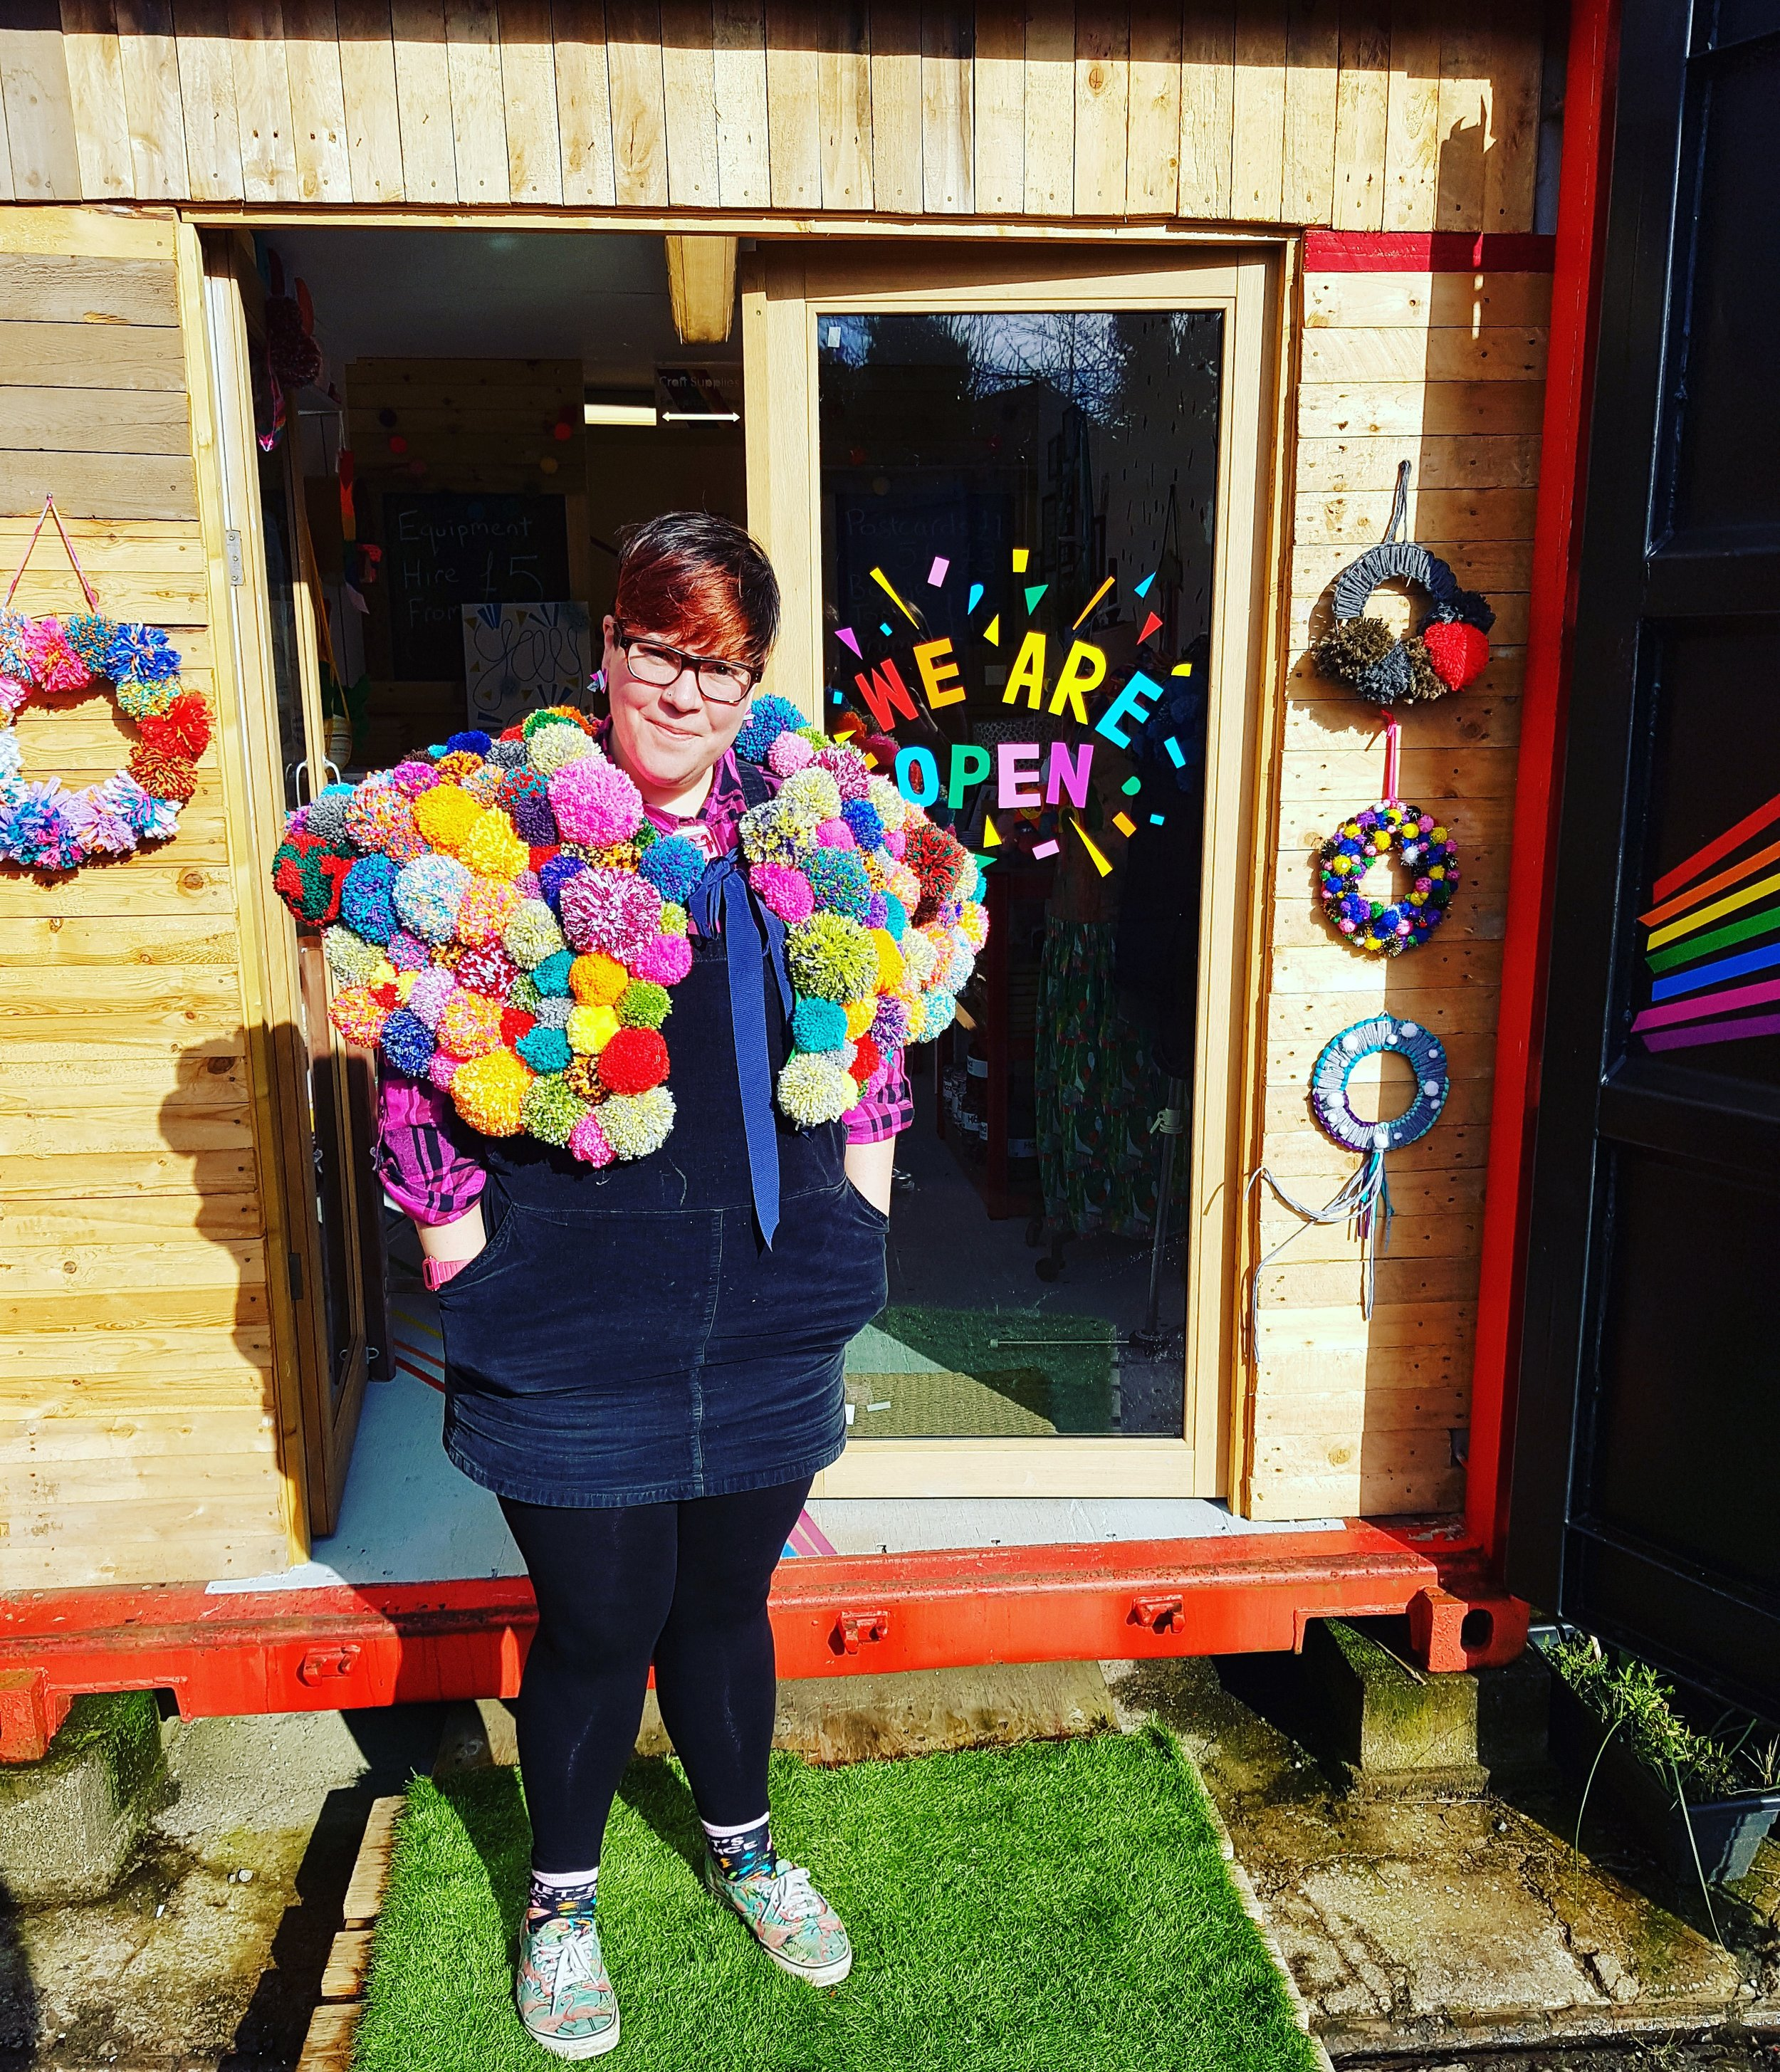 We specialise in a range of parties such as birthday crafter parties!  We can cater for all ages and crafty abilities and have a lovely shipping container studio to host the party or we can come to you!Any of of our existing workshops can be offered, but here are just a few more ideas.. pompom making, bunting making, wall hangings.  www.twinmade.com